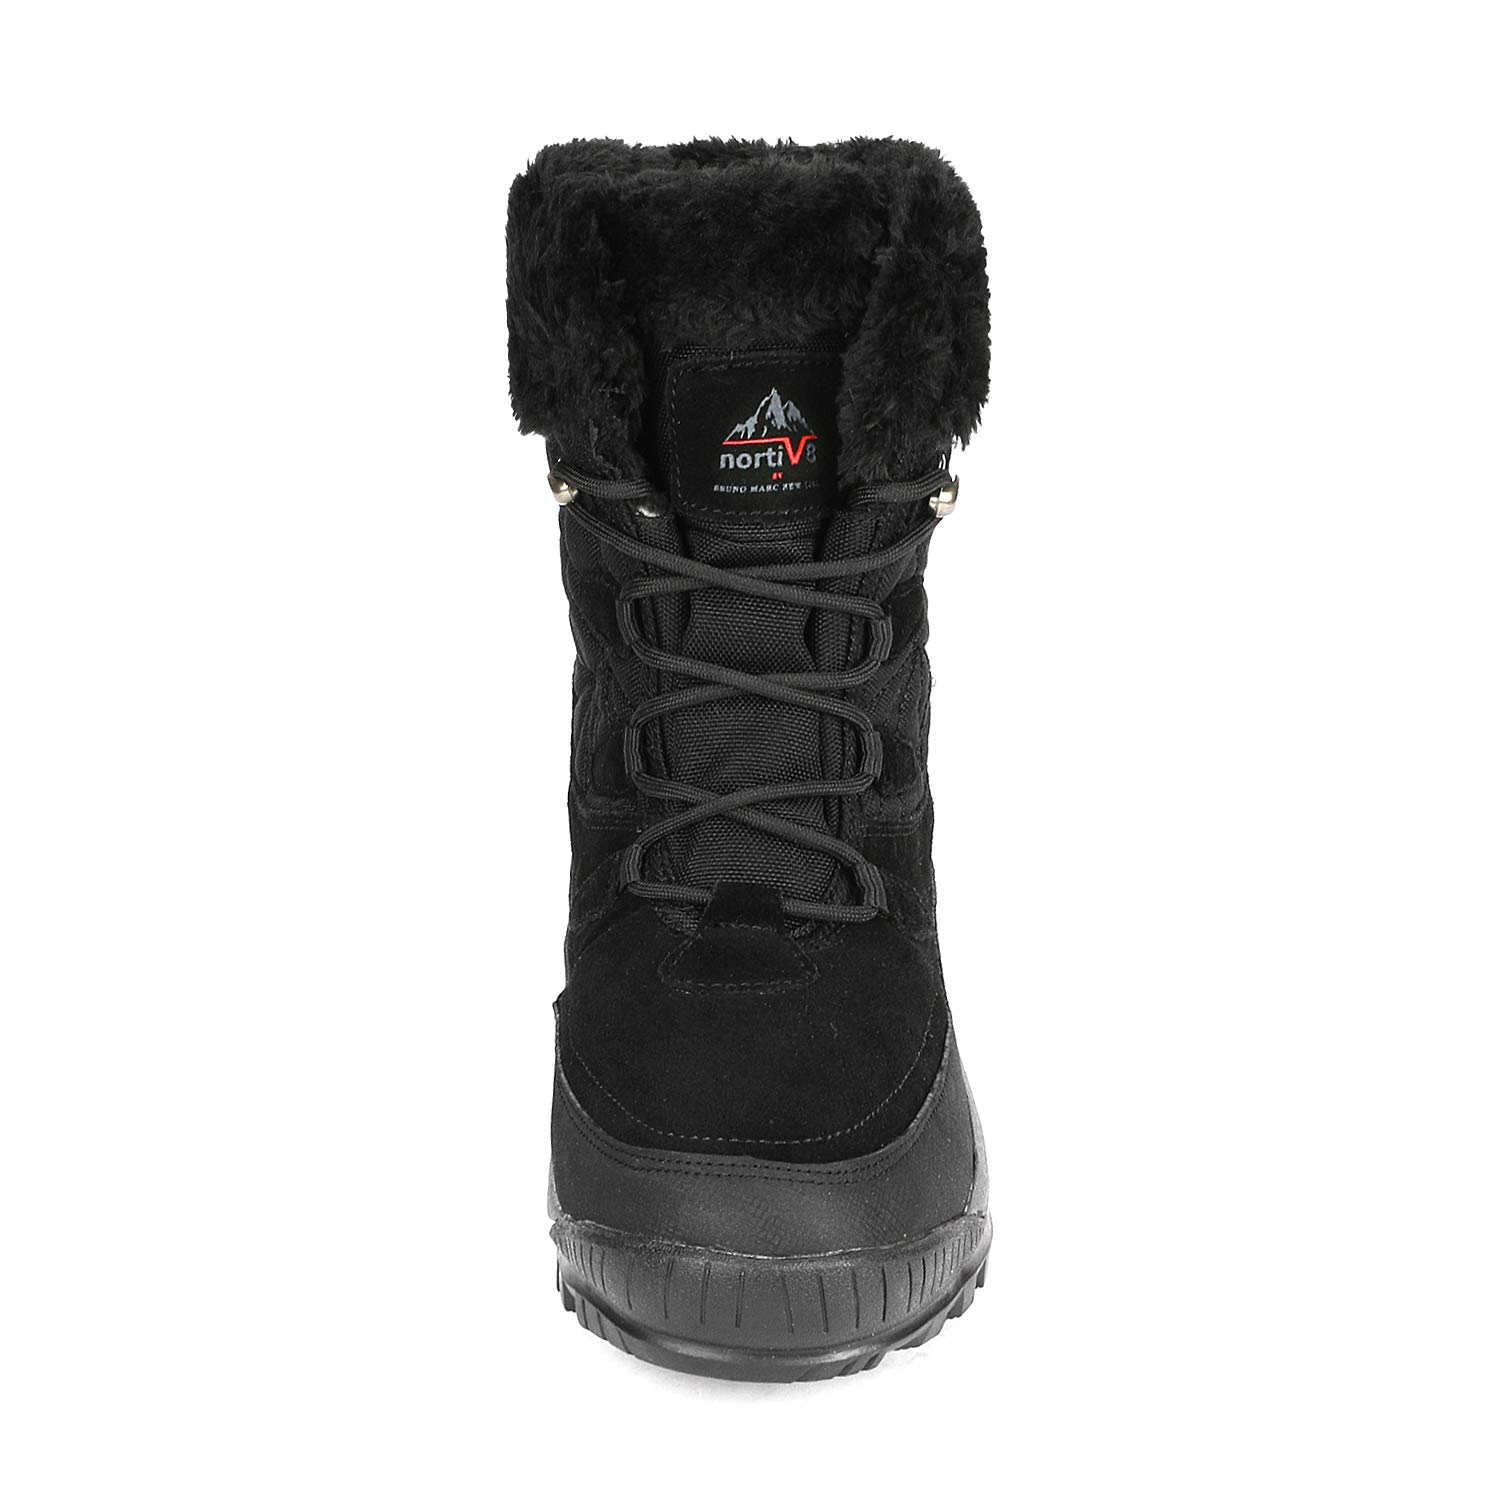 NORTIV 8 Womens A0052 Insulated Waterproof Construction Hiking Winter Snow Boots